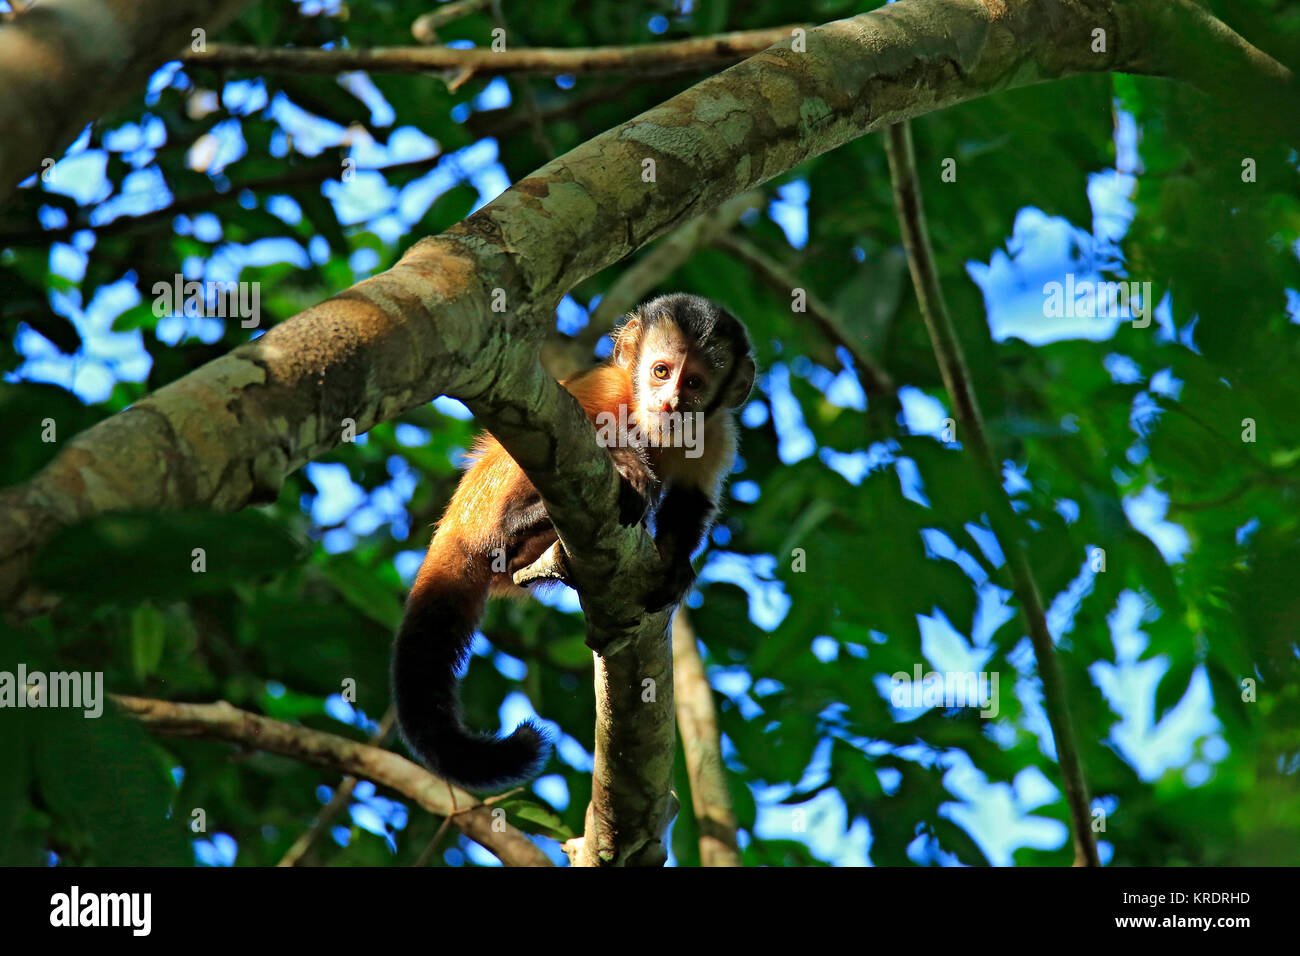 Young Tufted Capuchin Monkey Looking down from a Branch. Amazon Rainforest, Brazil - Stock Image